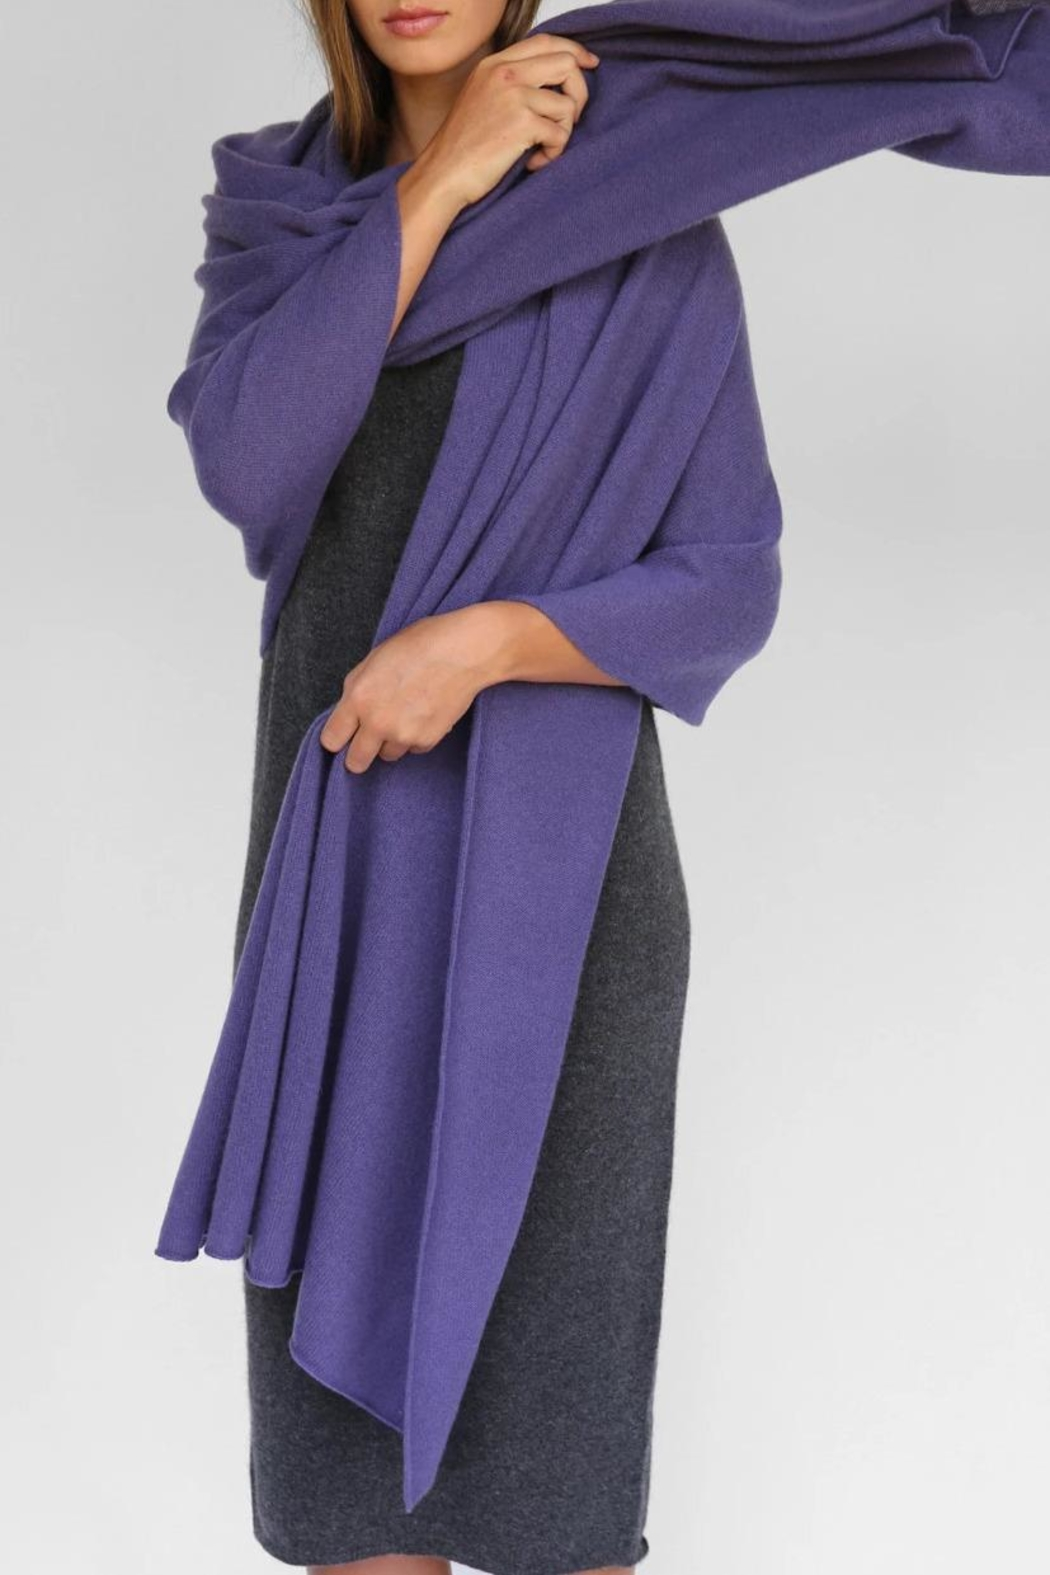 Oats Adele Cashmere Travel/wrap - Front Cropped Image